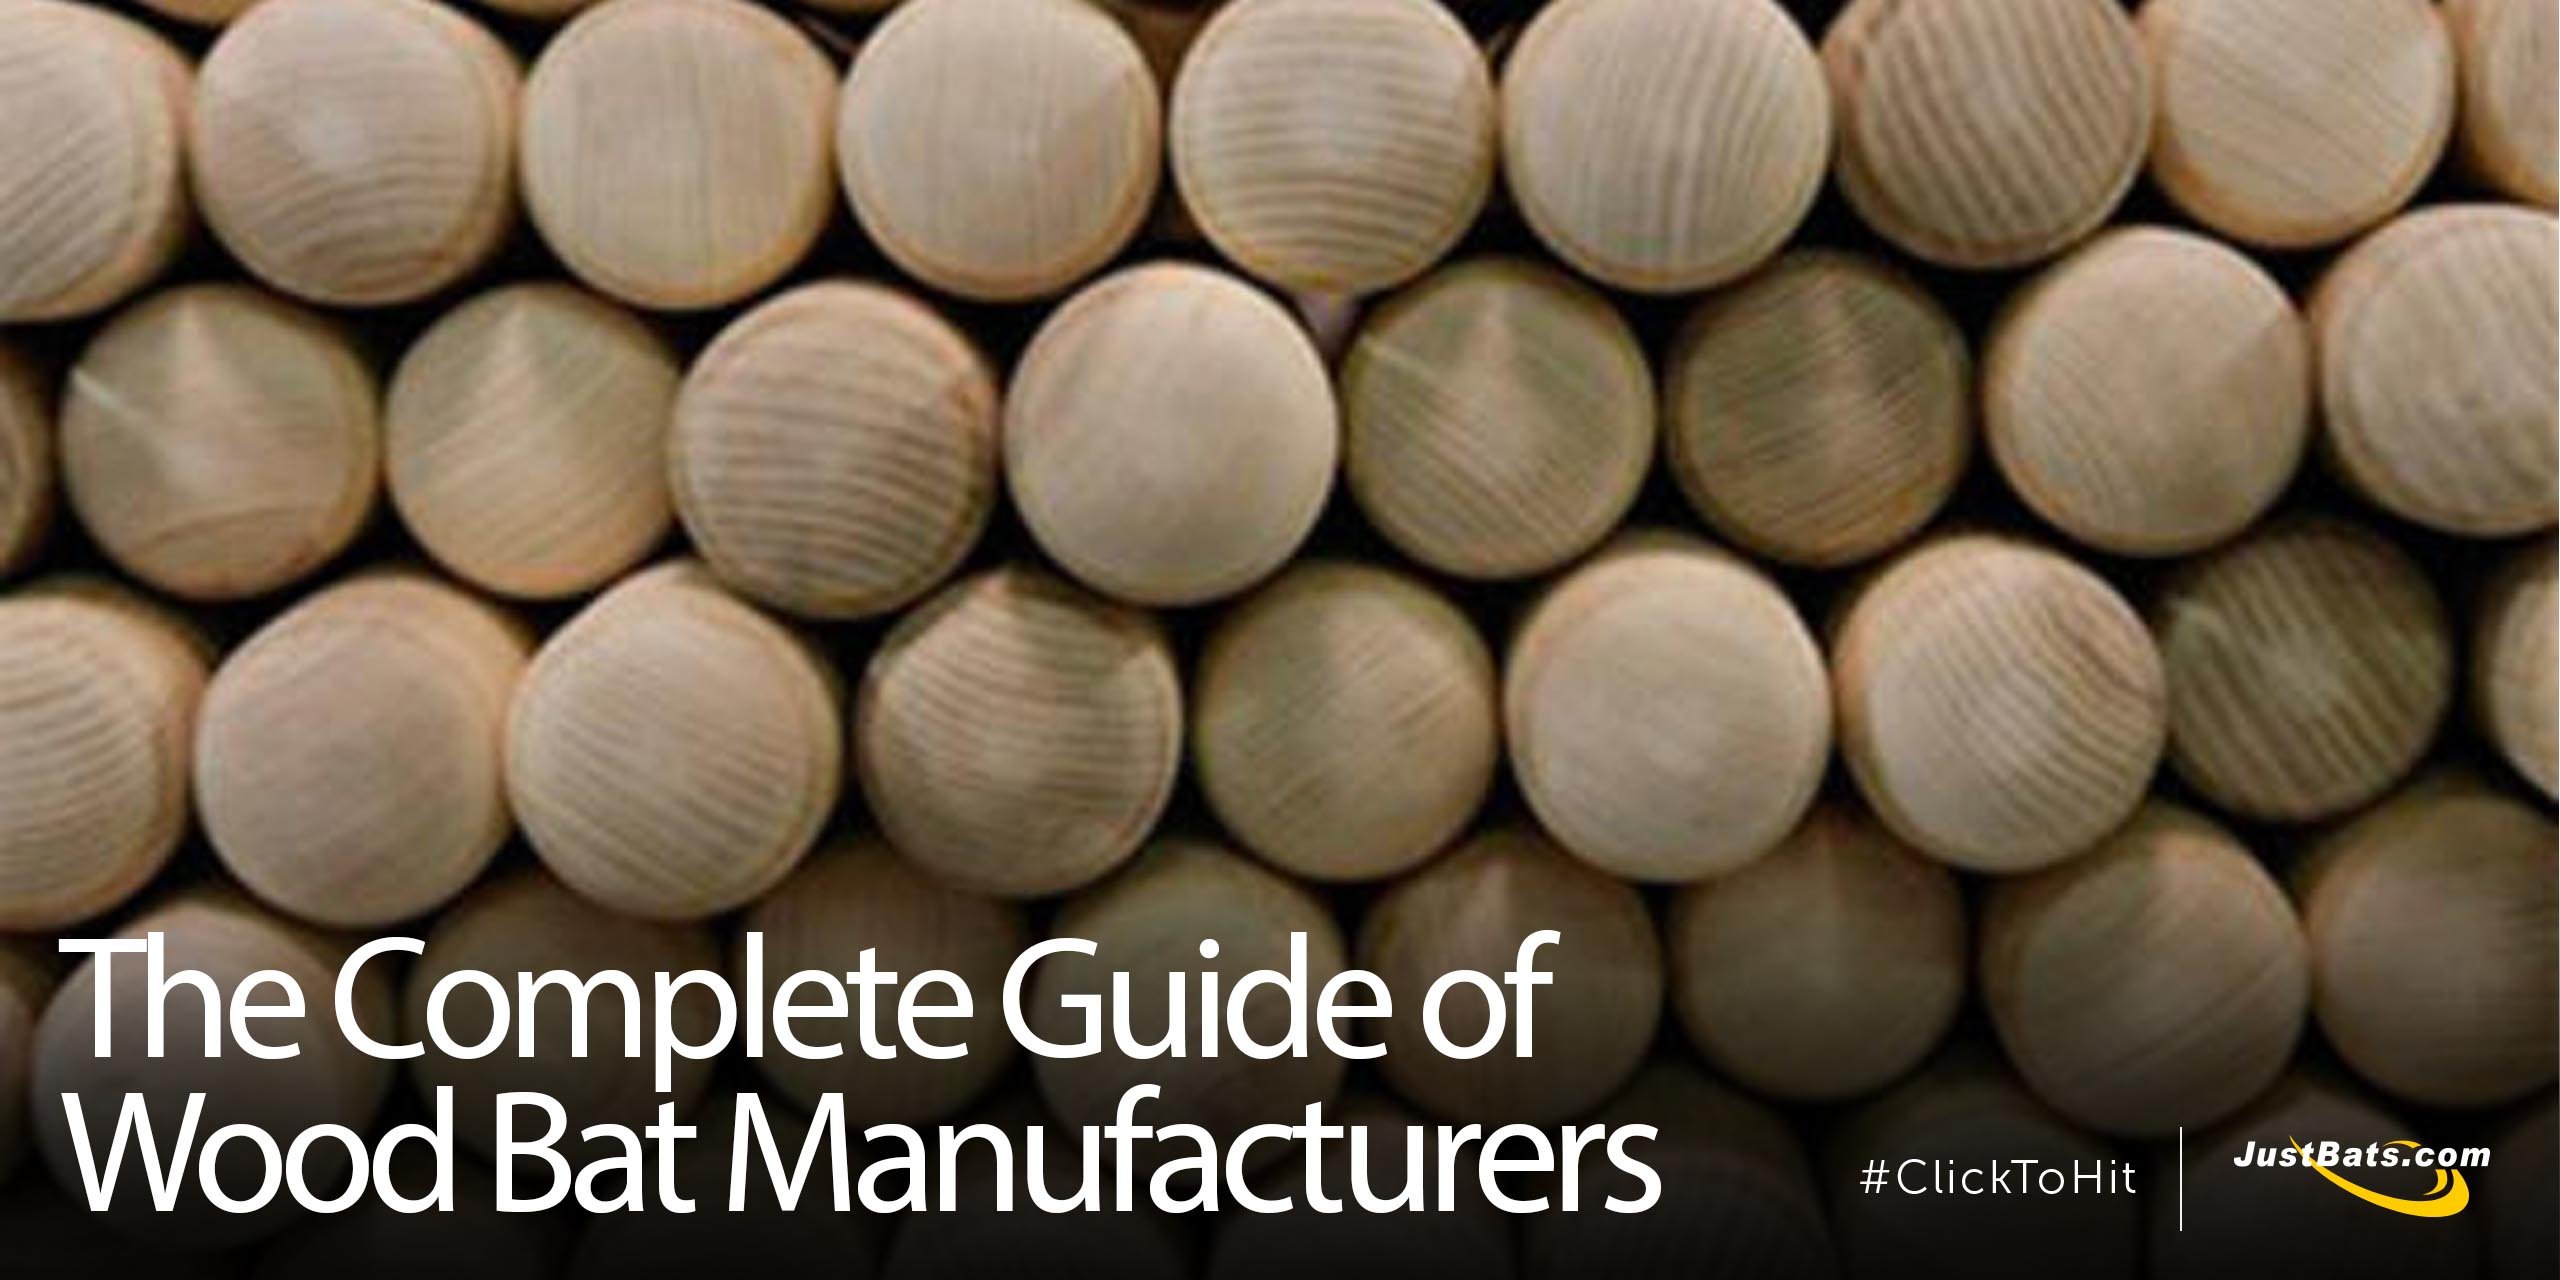 The Complete Guide of Wood Bat Manufacturers - Blog.jpg